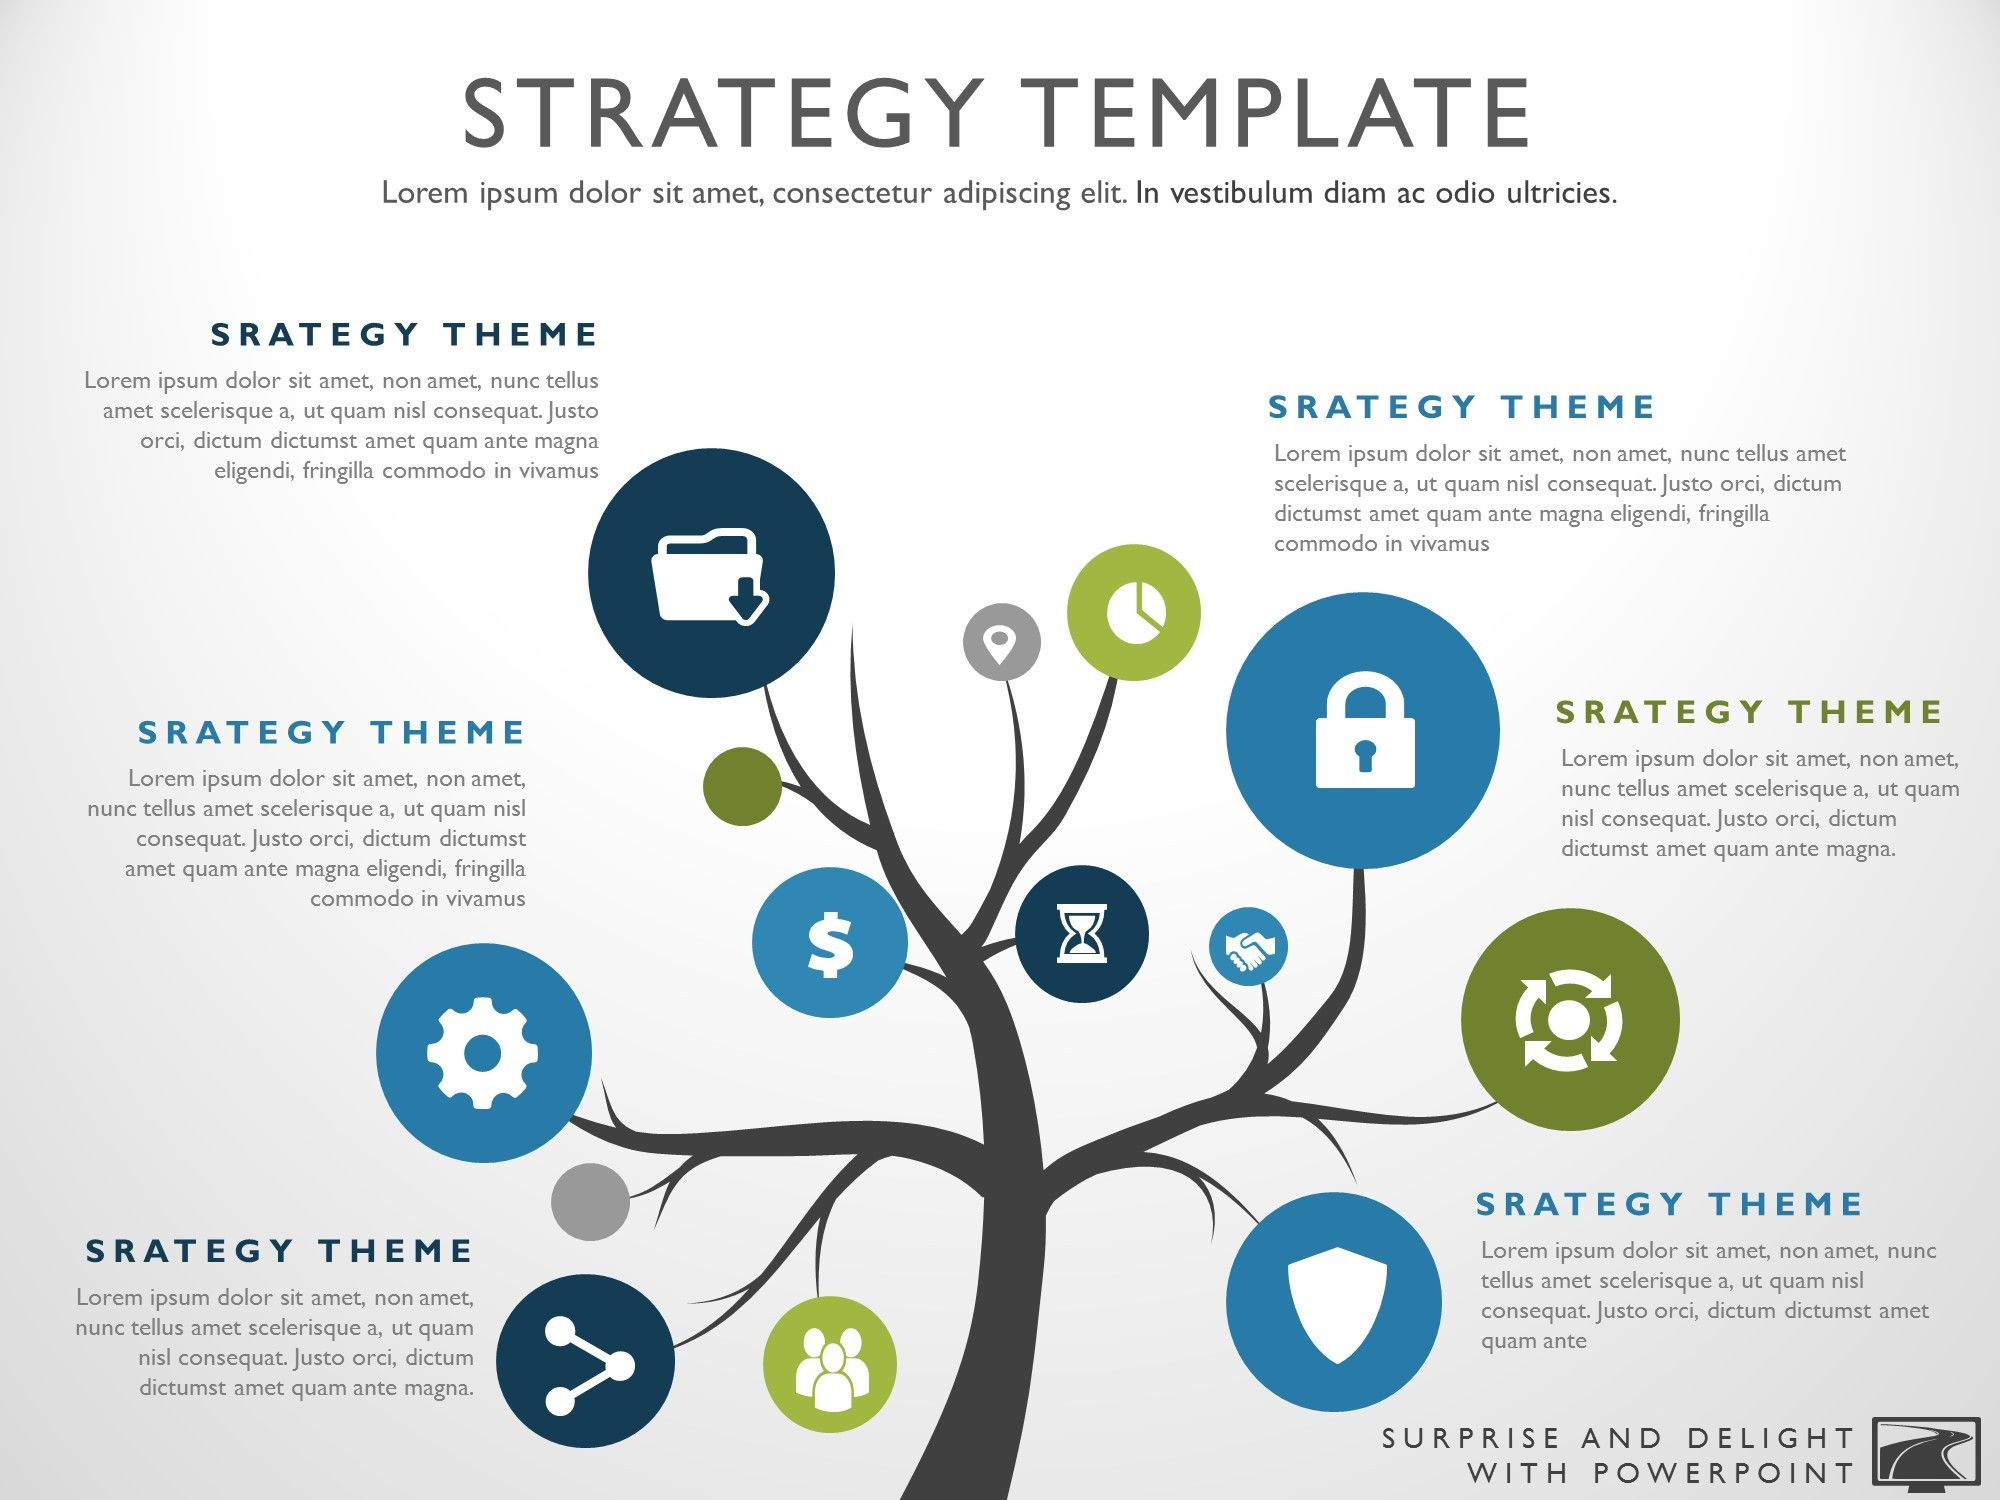 Product Strategy Template Marketing strategy template